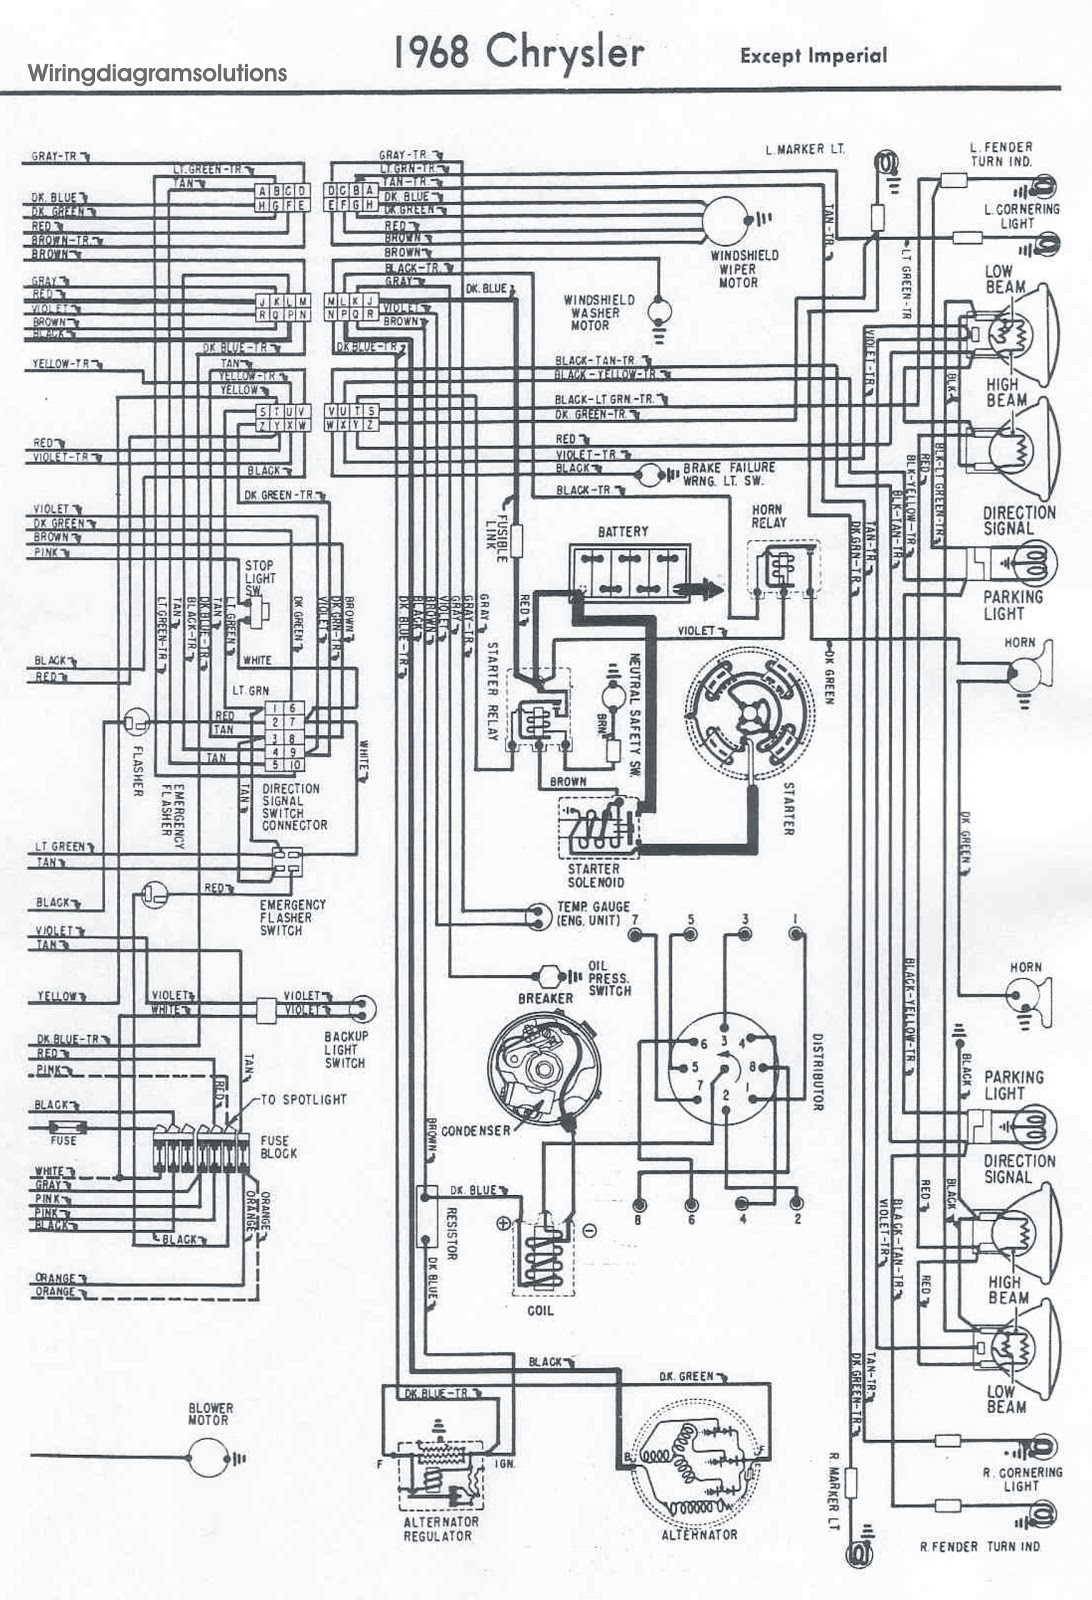 2000 chrysler concorde stereo wiring diagram images chrysler 2000 chrysler sebring radio wiring diagram besides